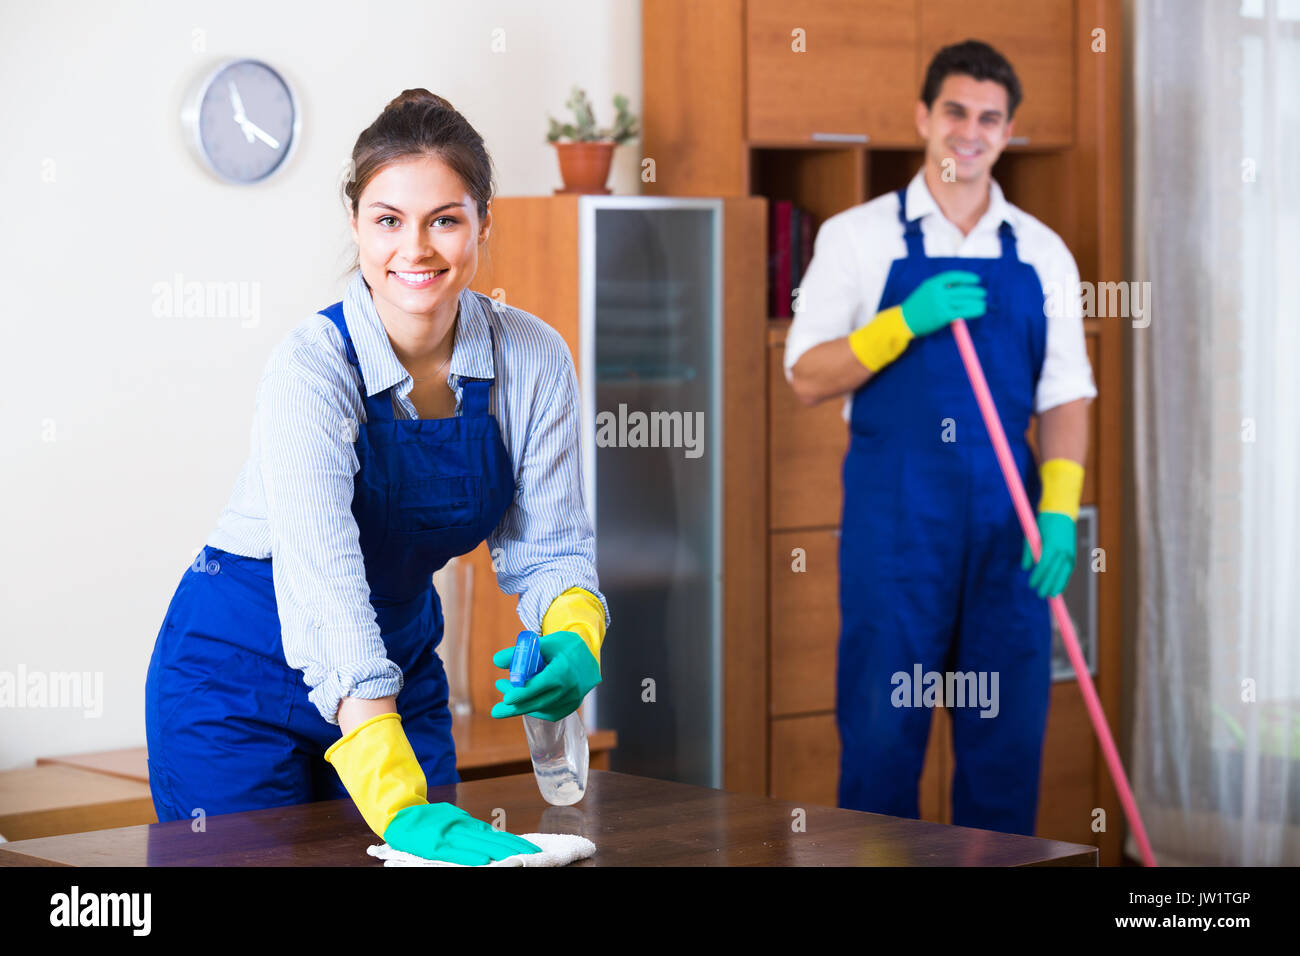 https://c8.alamy.com/comp/JW1TGP/professional-cleaners-cleaning-and-dusting-in-ordinary-apartment-JW1TGP.jpg